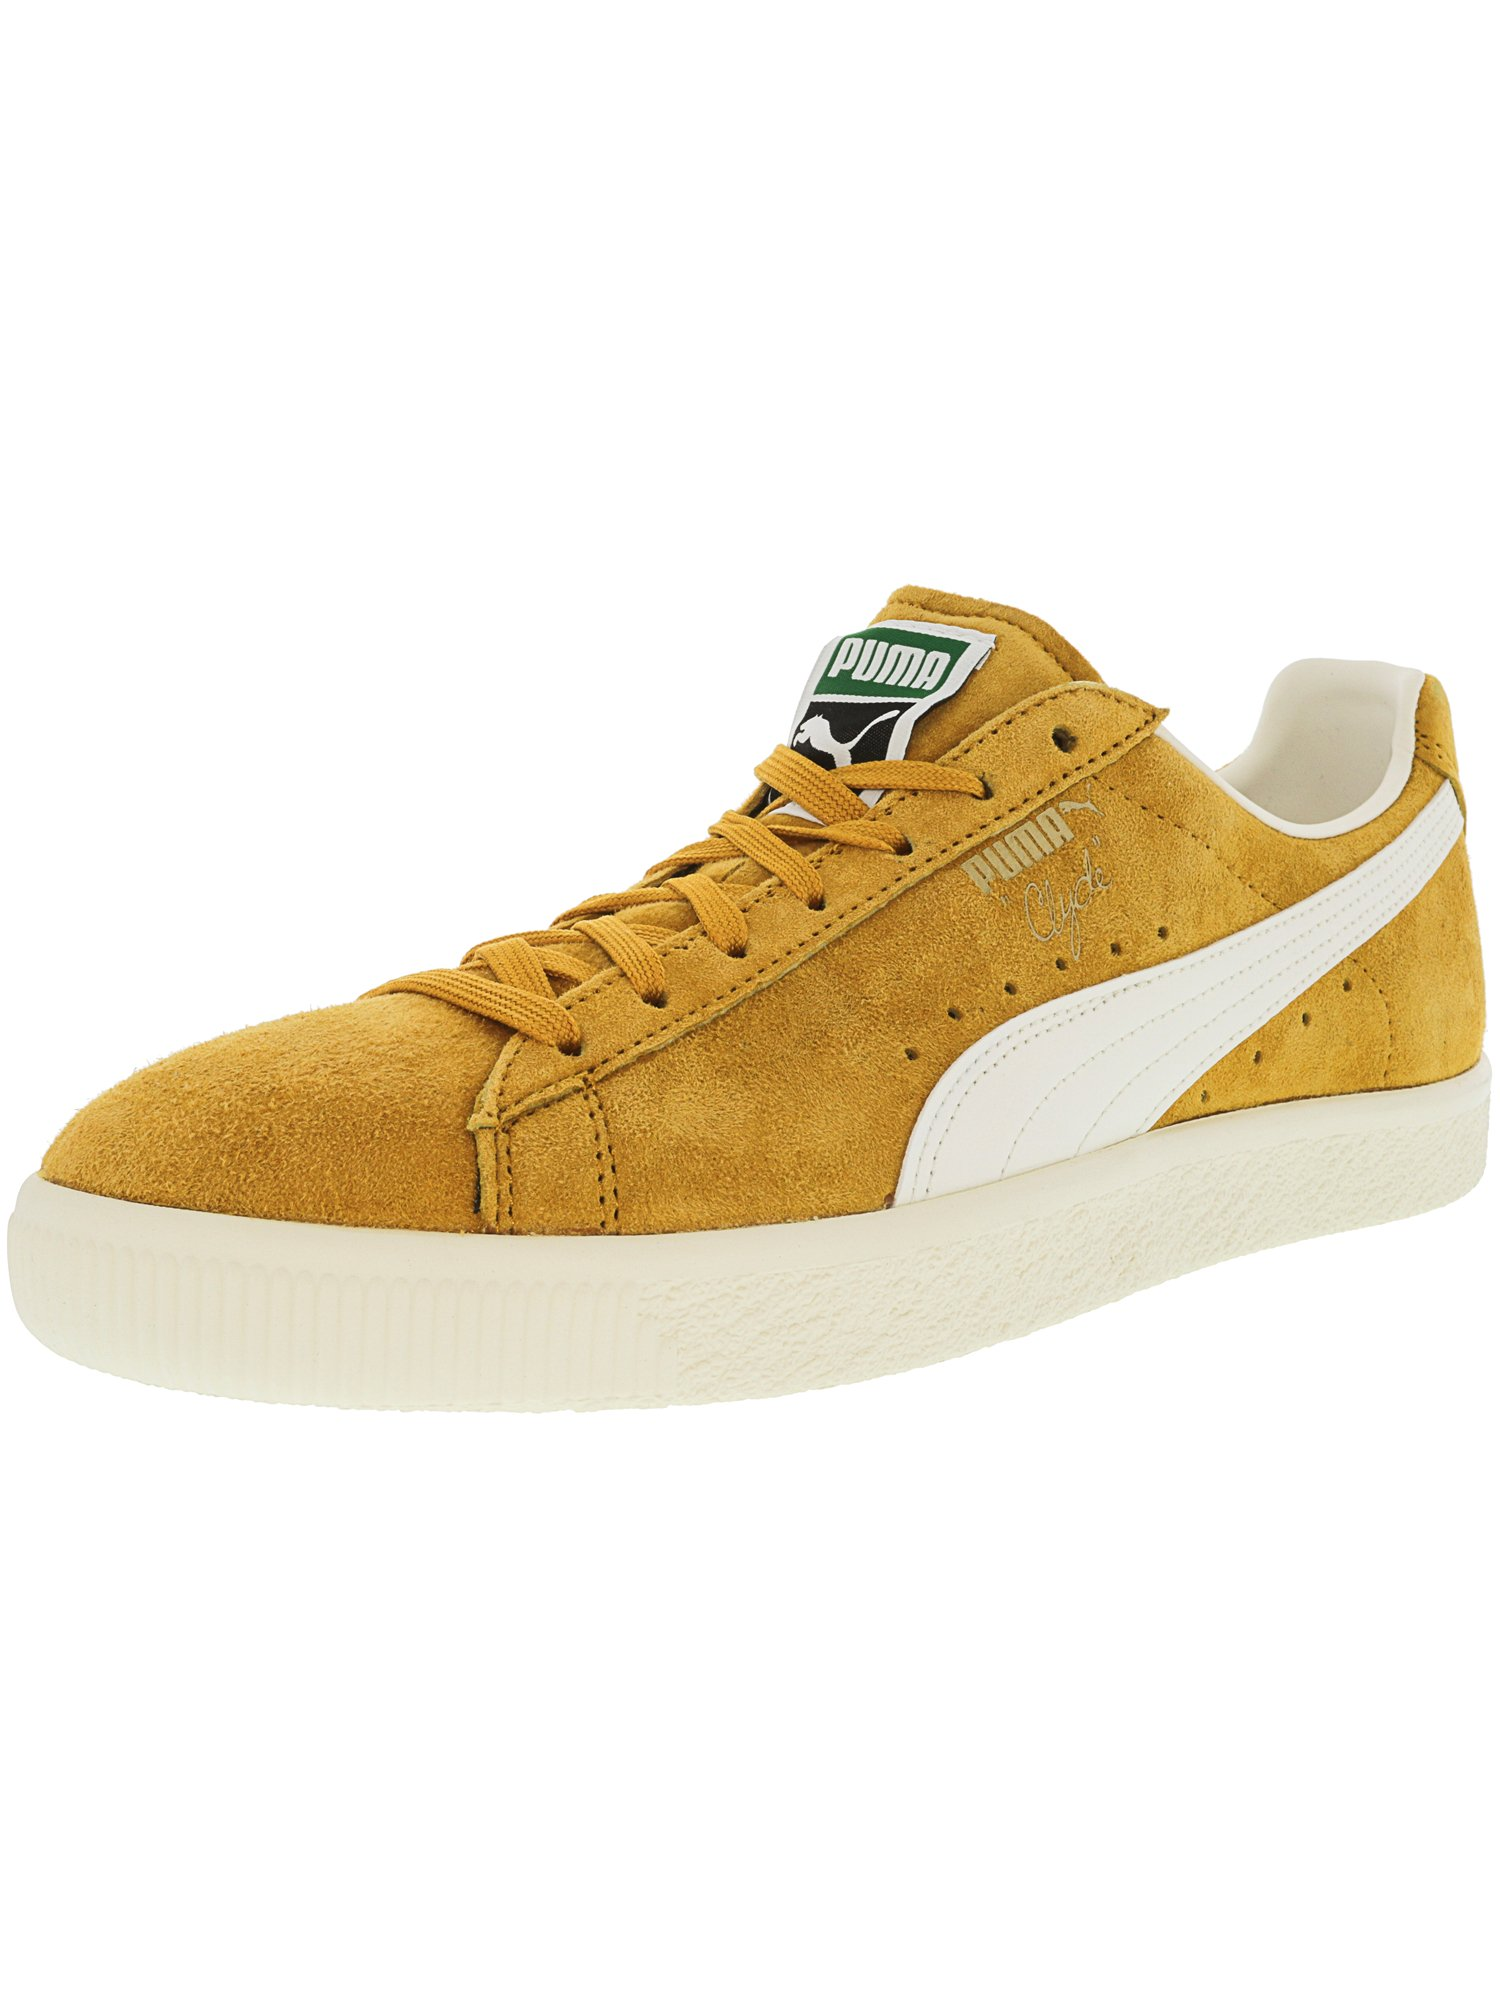 Puma Men's Clyde Premium Artisans Gold / Whisper White Ankle-High Suede Fashion Sneaker - 11M